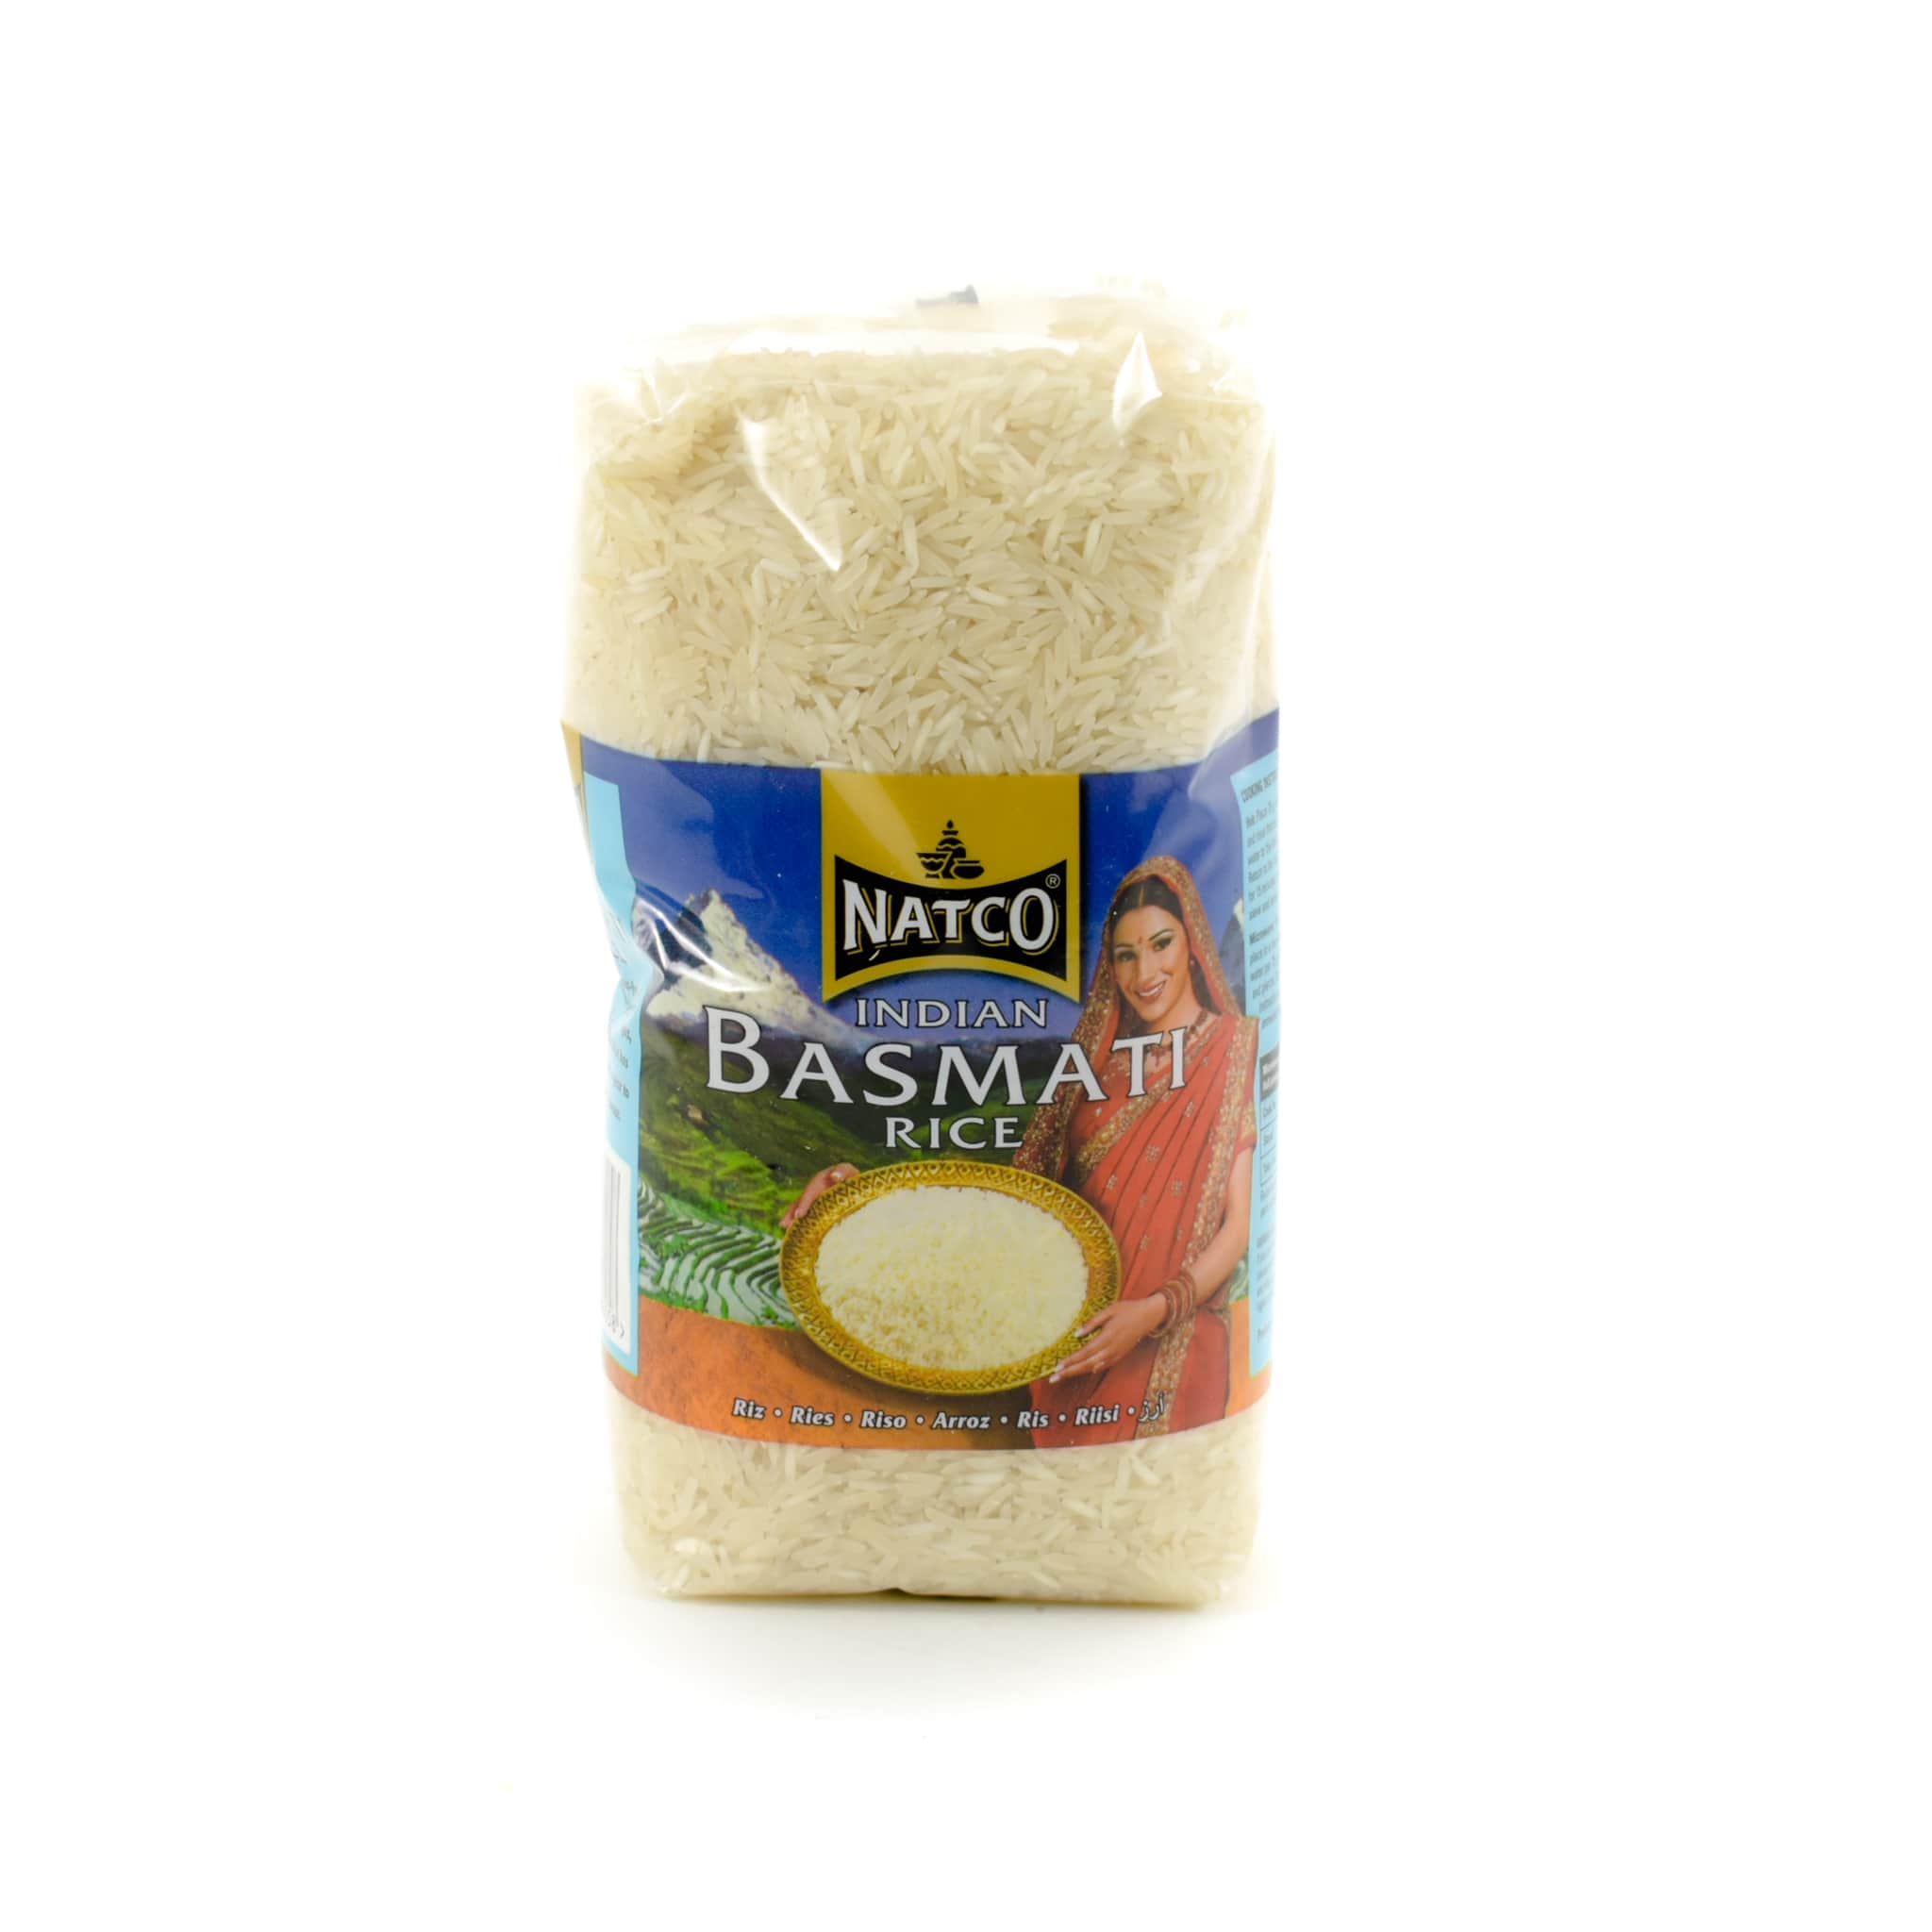 Natco Indian Basmati Rice 1kg